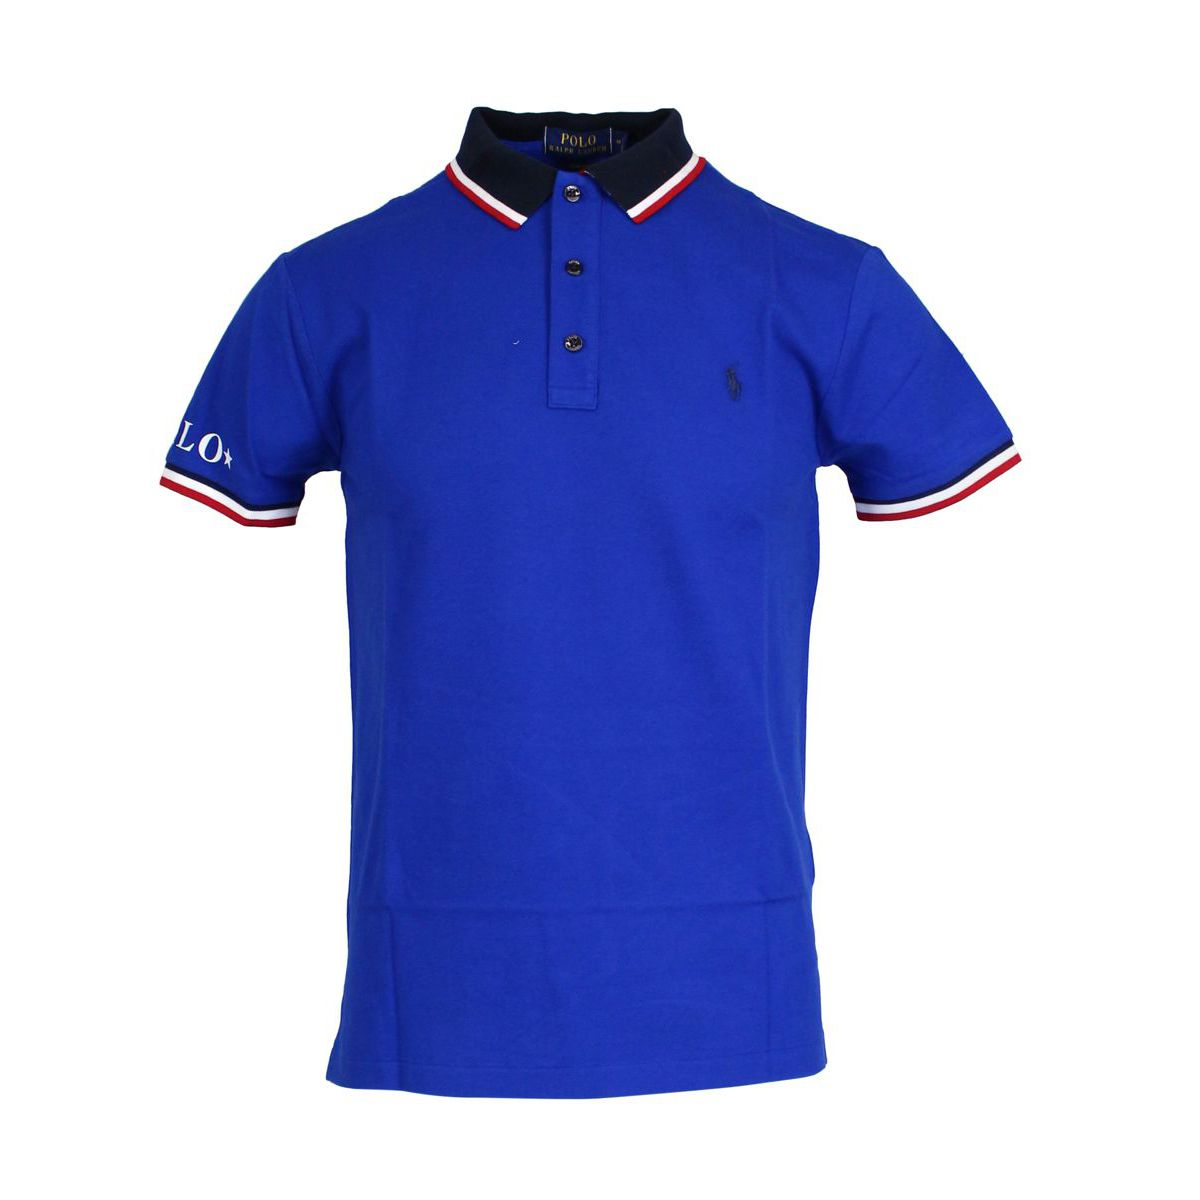 Polo slim-fit in cotone con collo a contrasto Zaffiro Polo Ralph Lauren